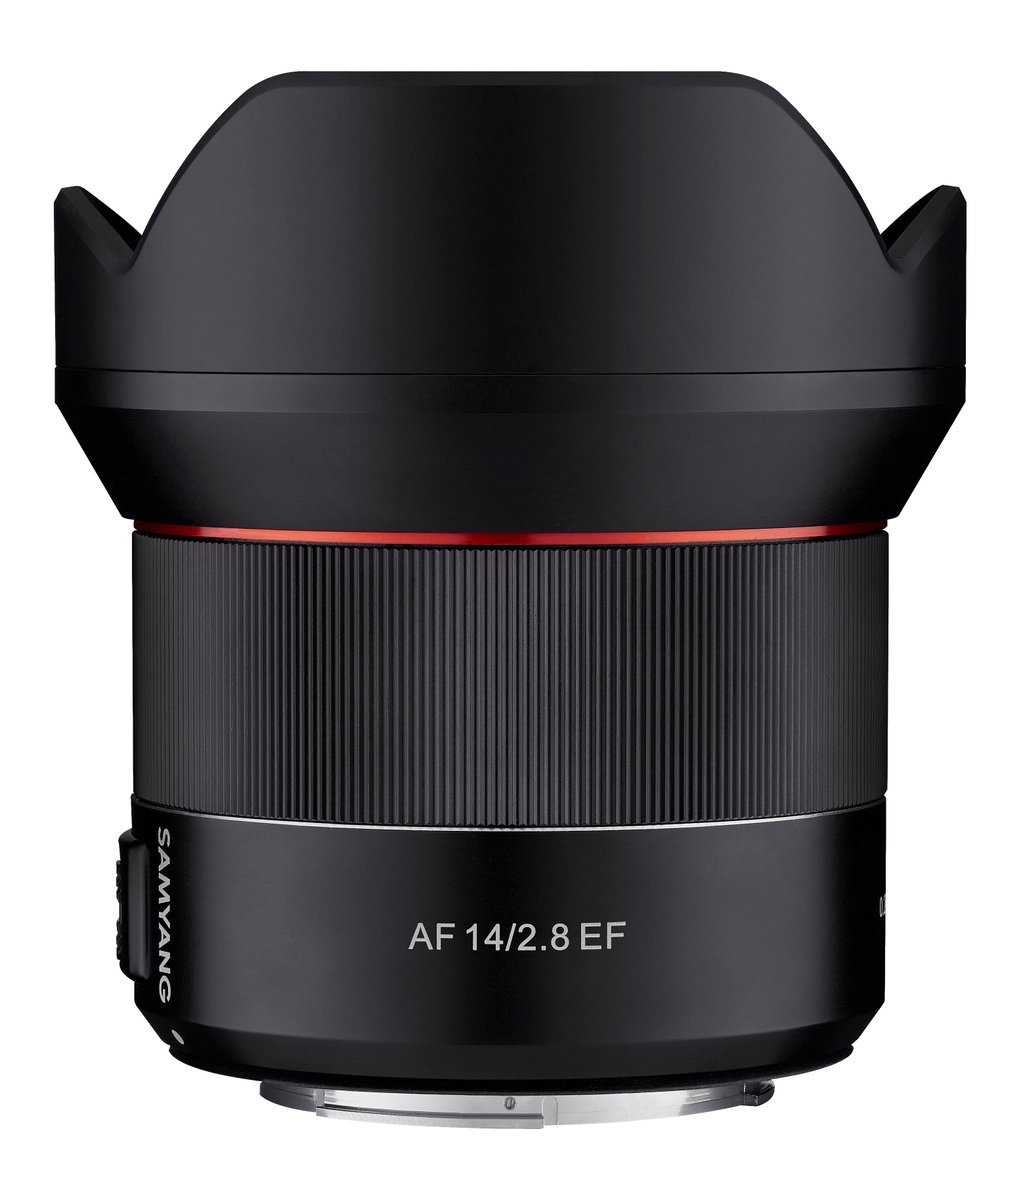 Samyang AF 14mm f/2.8 EF lens Coming Soon for Canon Mount